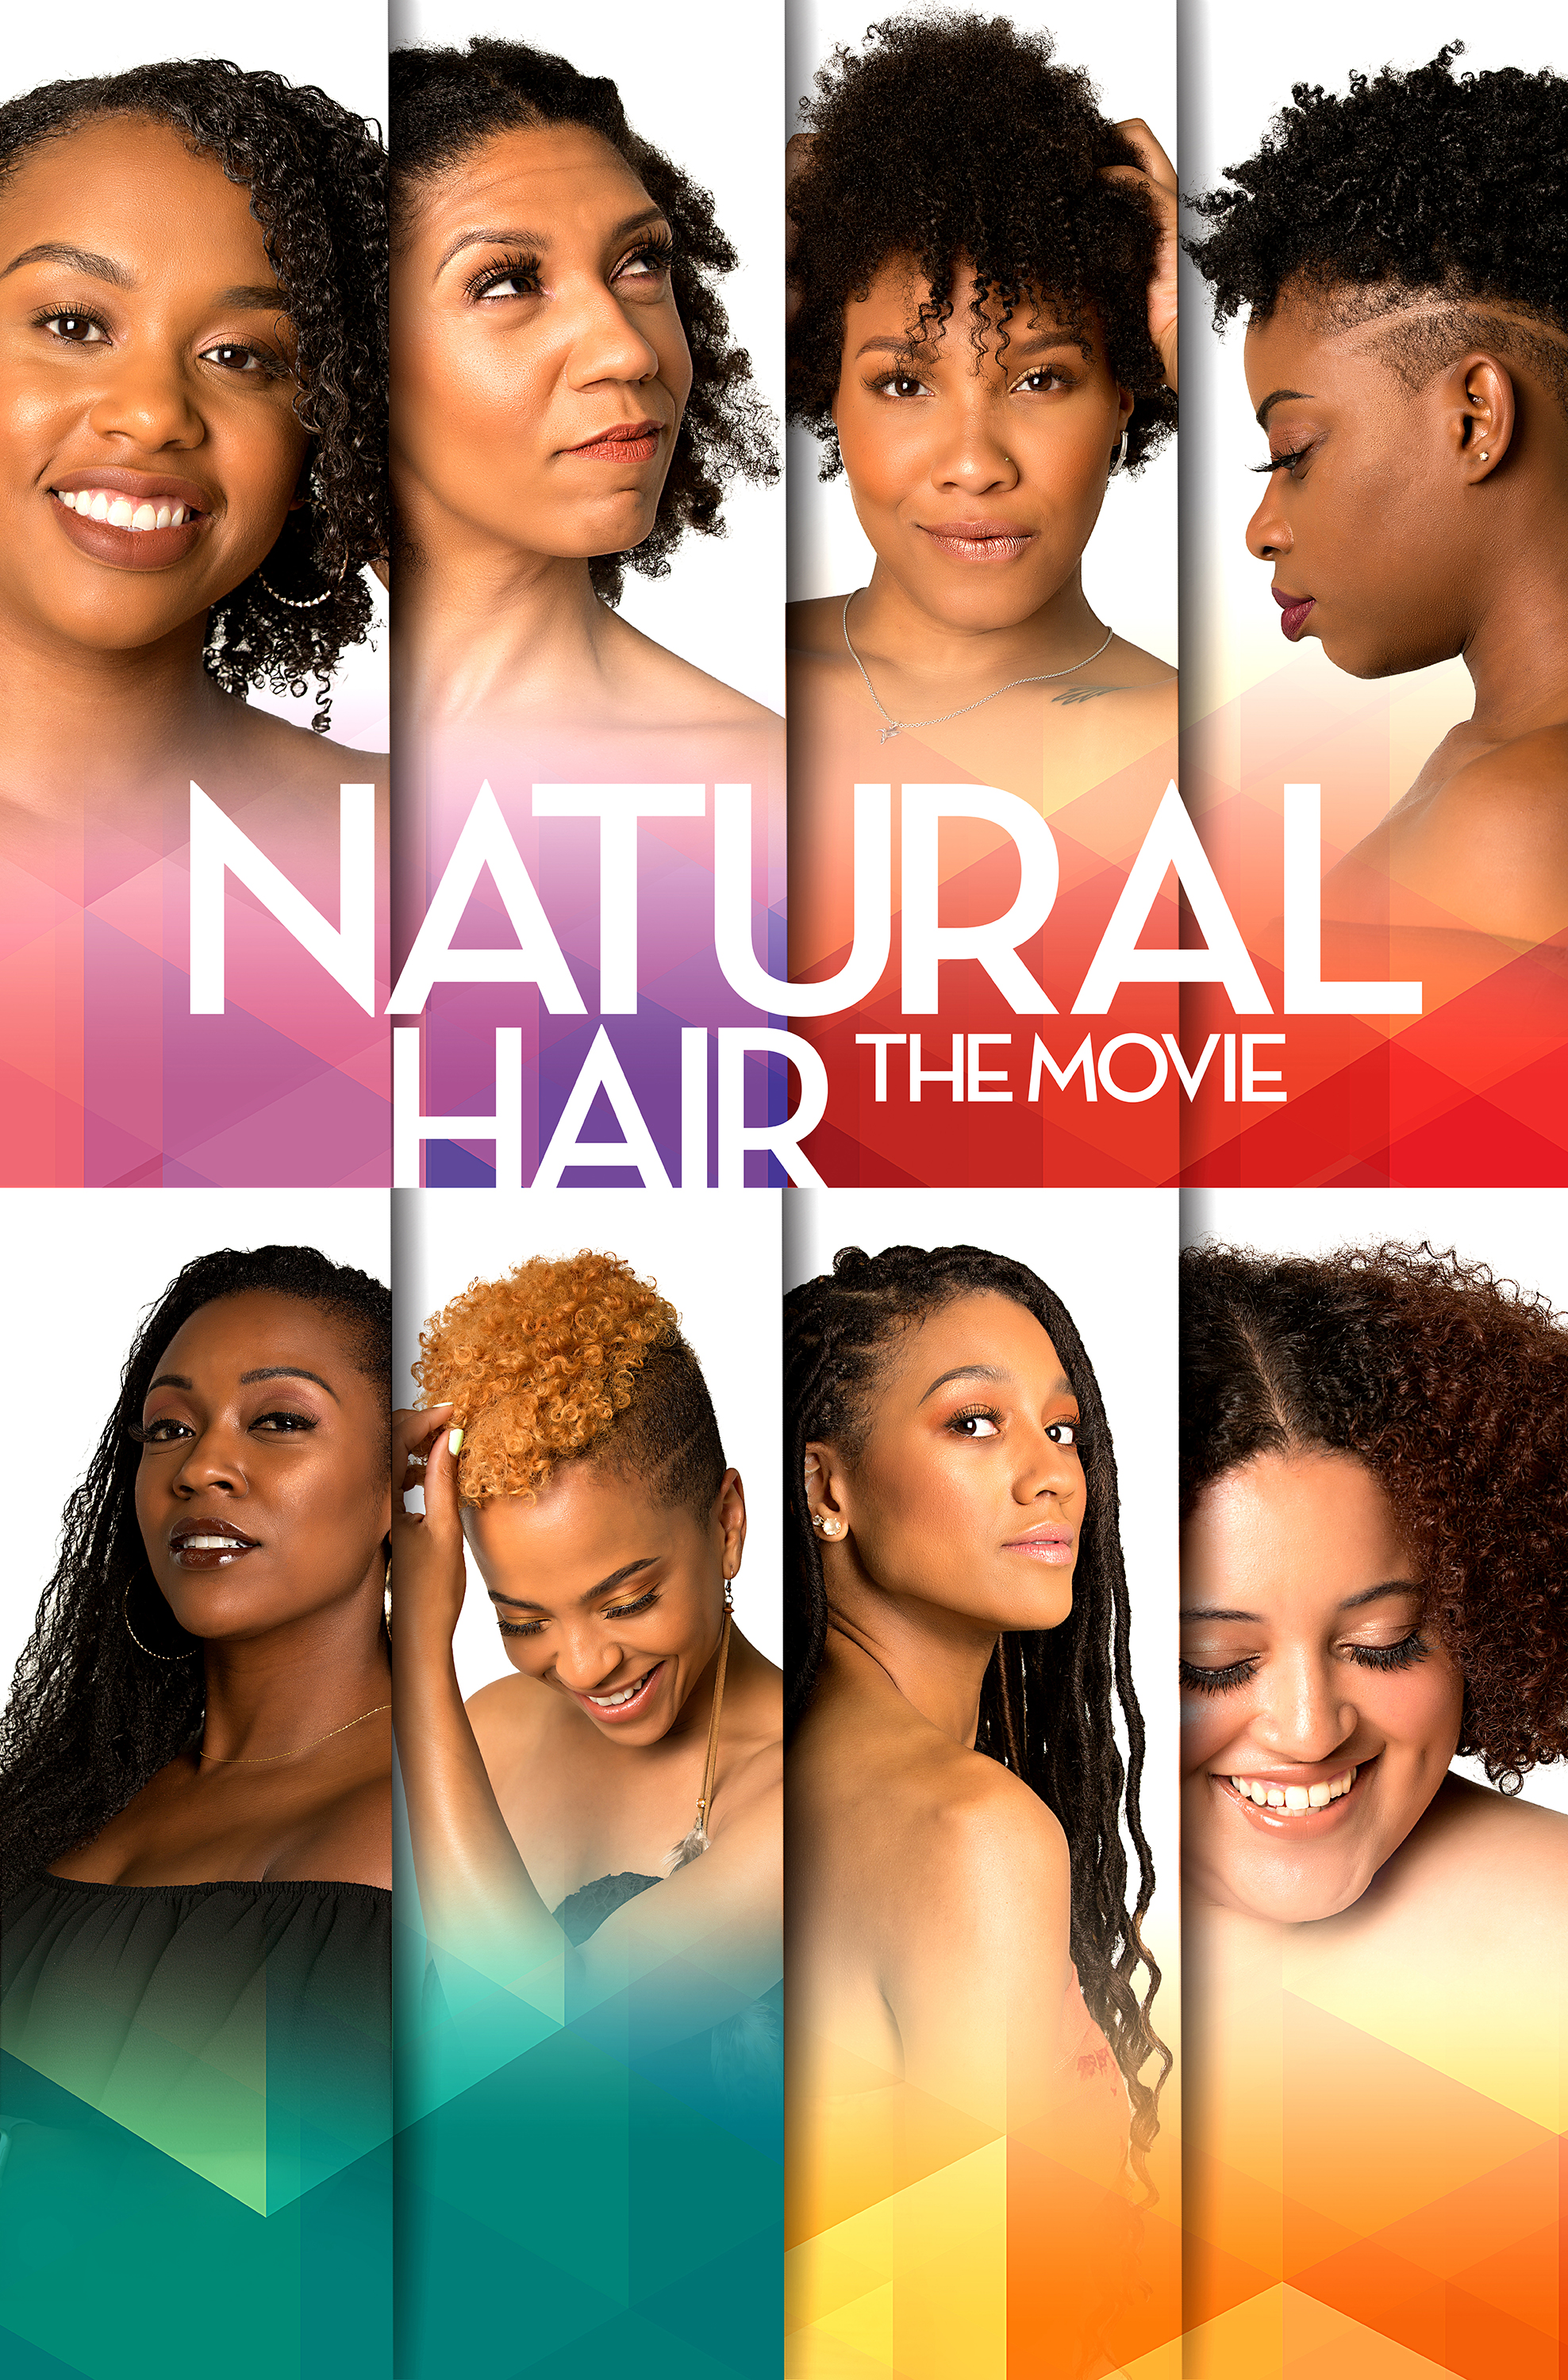 Key Art for Natural Hair The Movie